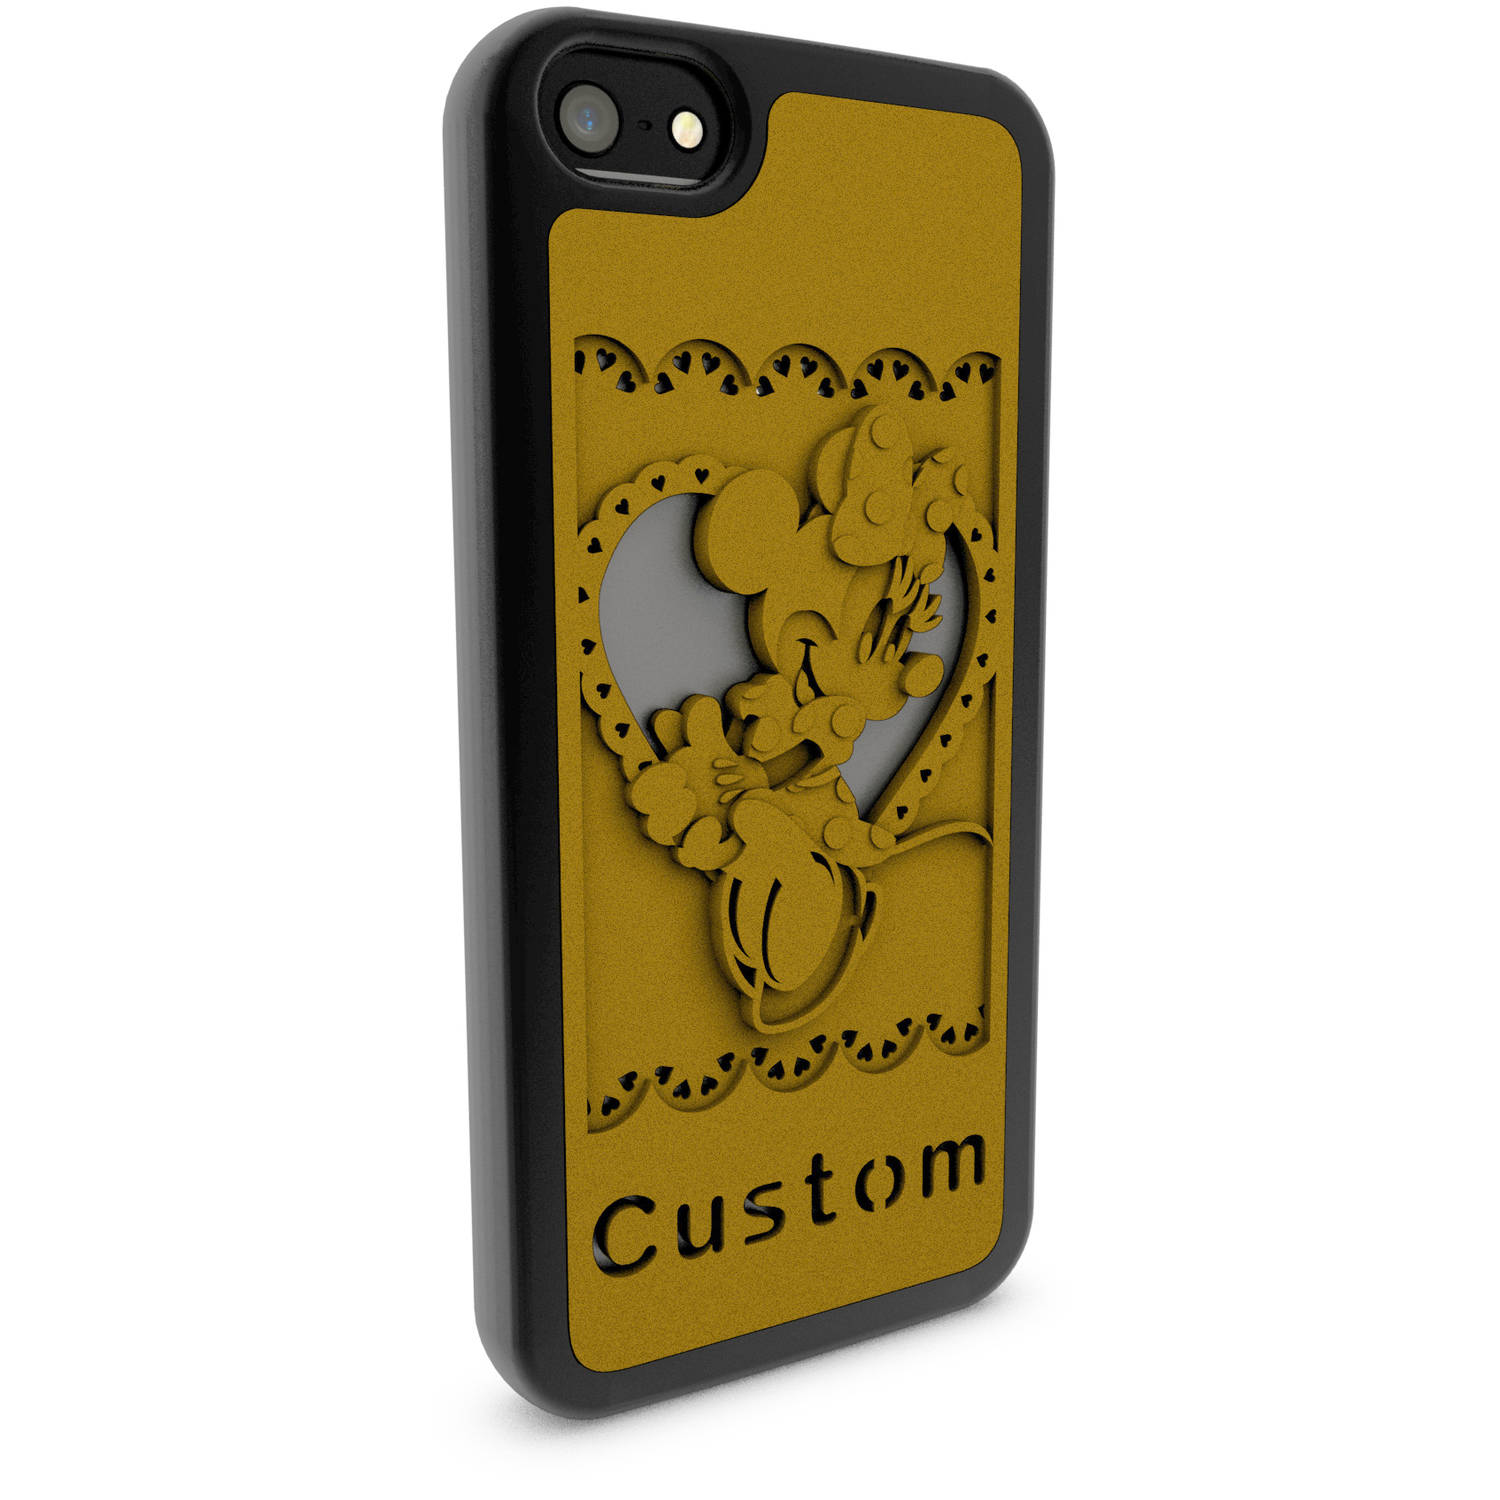 Apple iPhone 5 and 5S 3D Printed Custom Phone Case - Disney Classics - Minnie